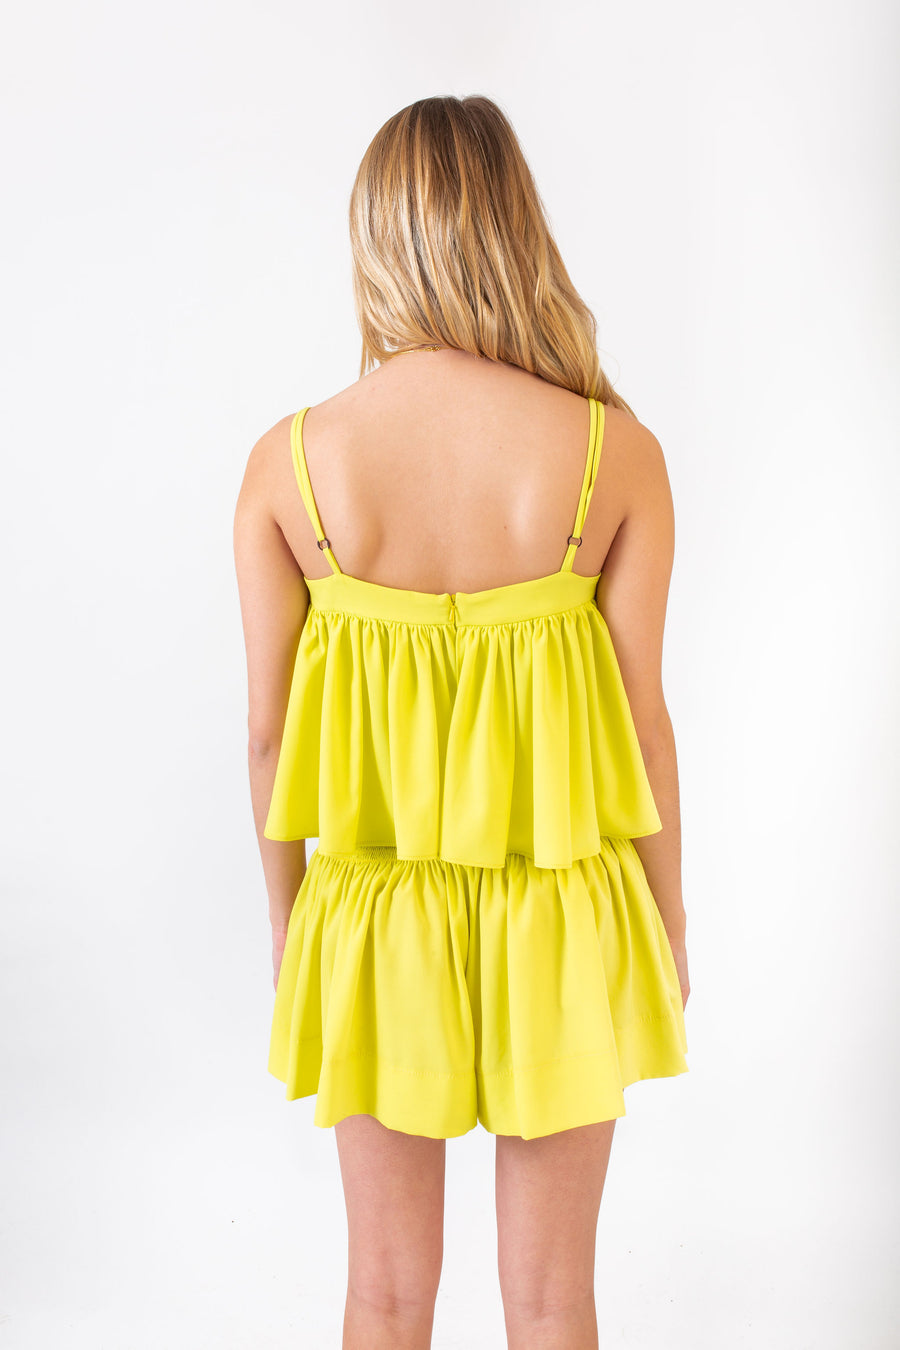 ELIZA TOP SUNRISE YELLOW *LIMITED*EDITION*